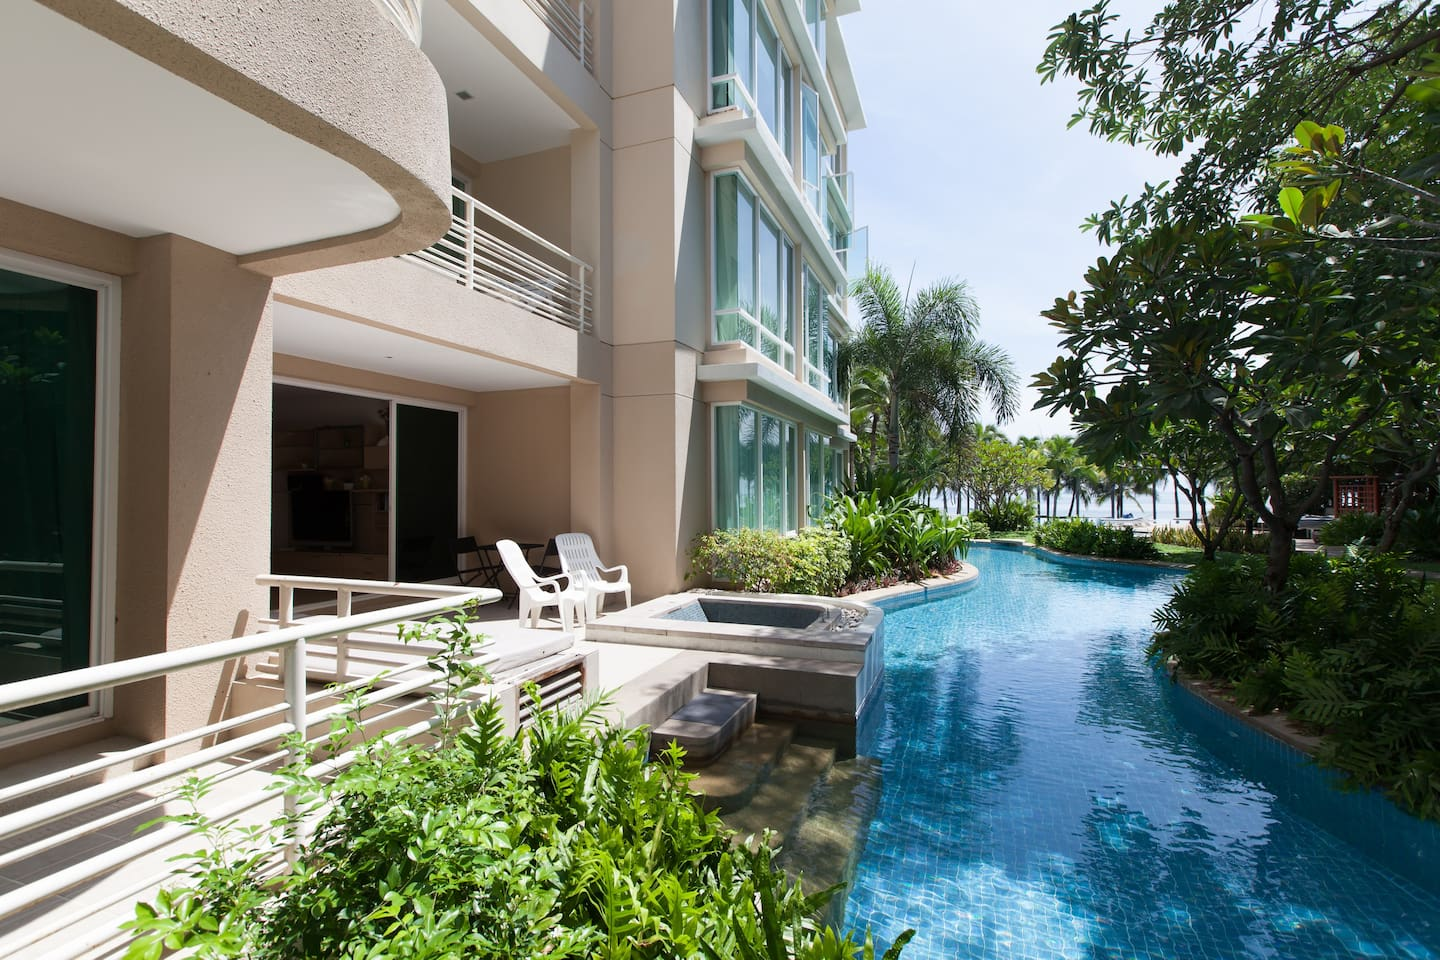 Master Bedroom and living room's balcony with private jacuzzi and ditect pool access. First building from the beach.